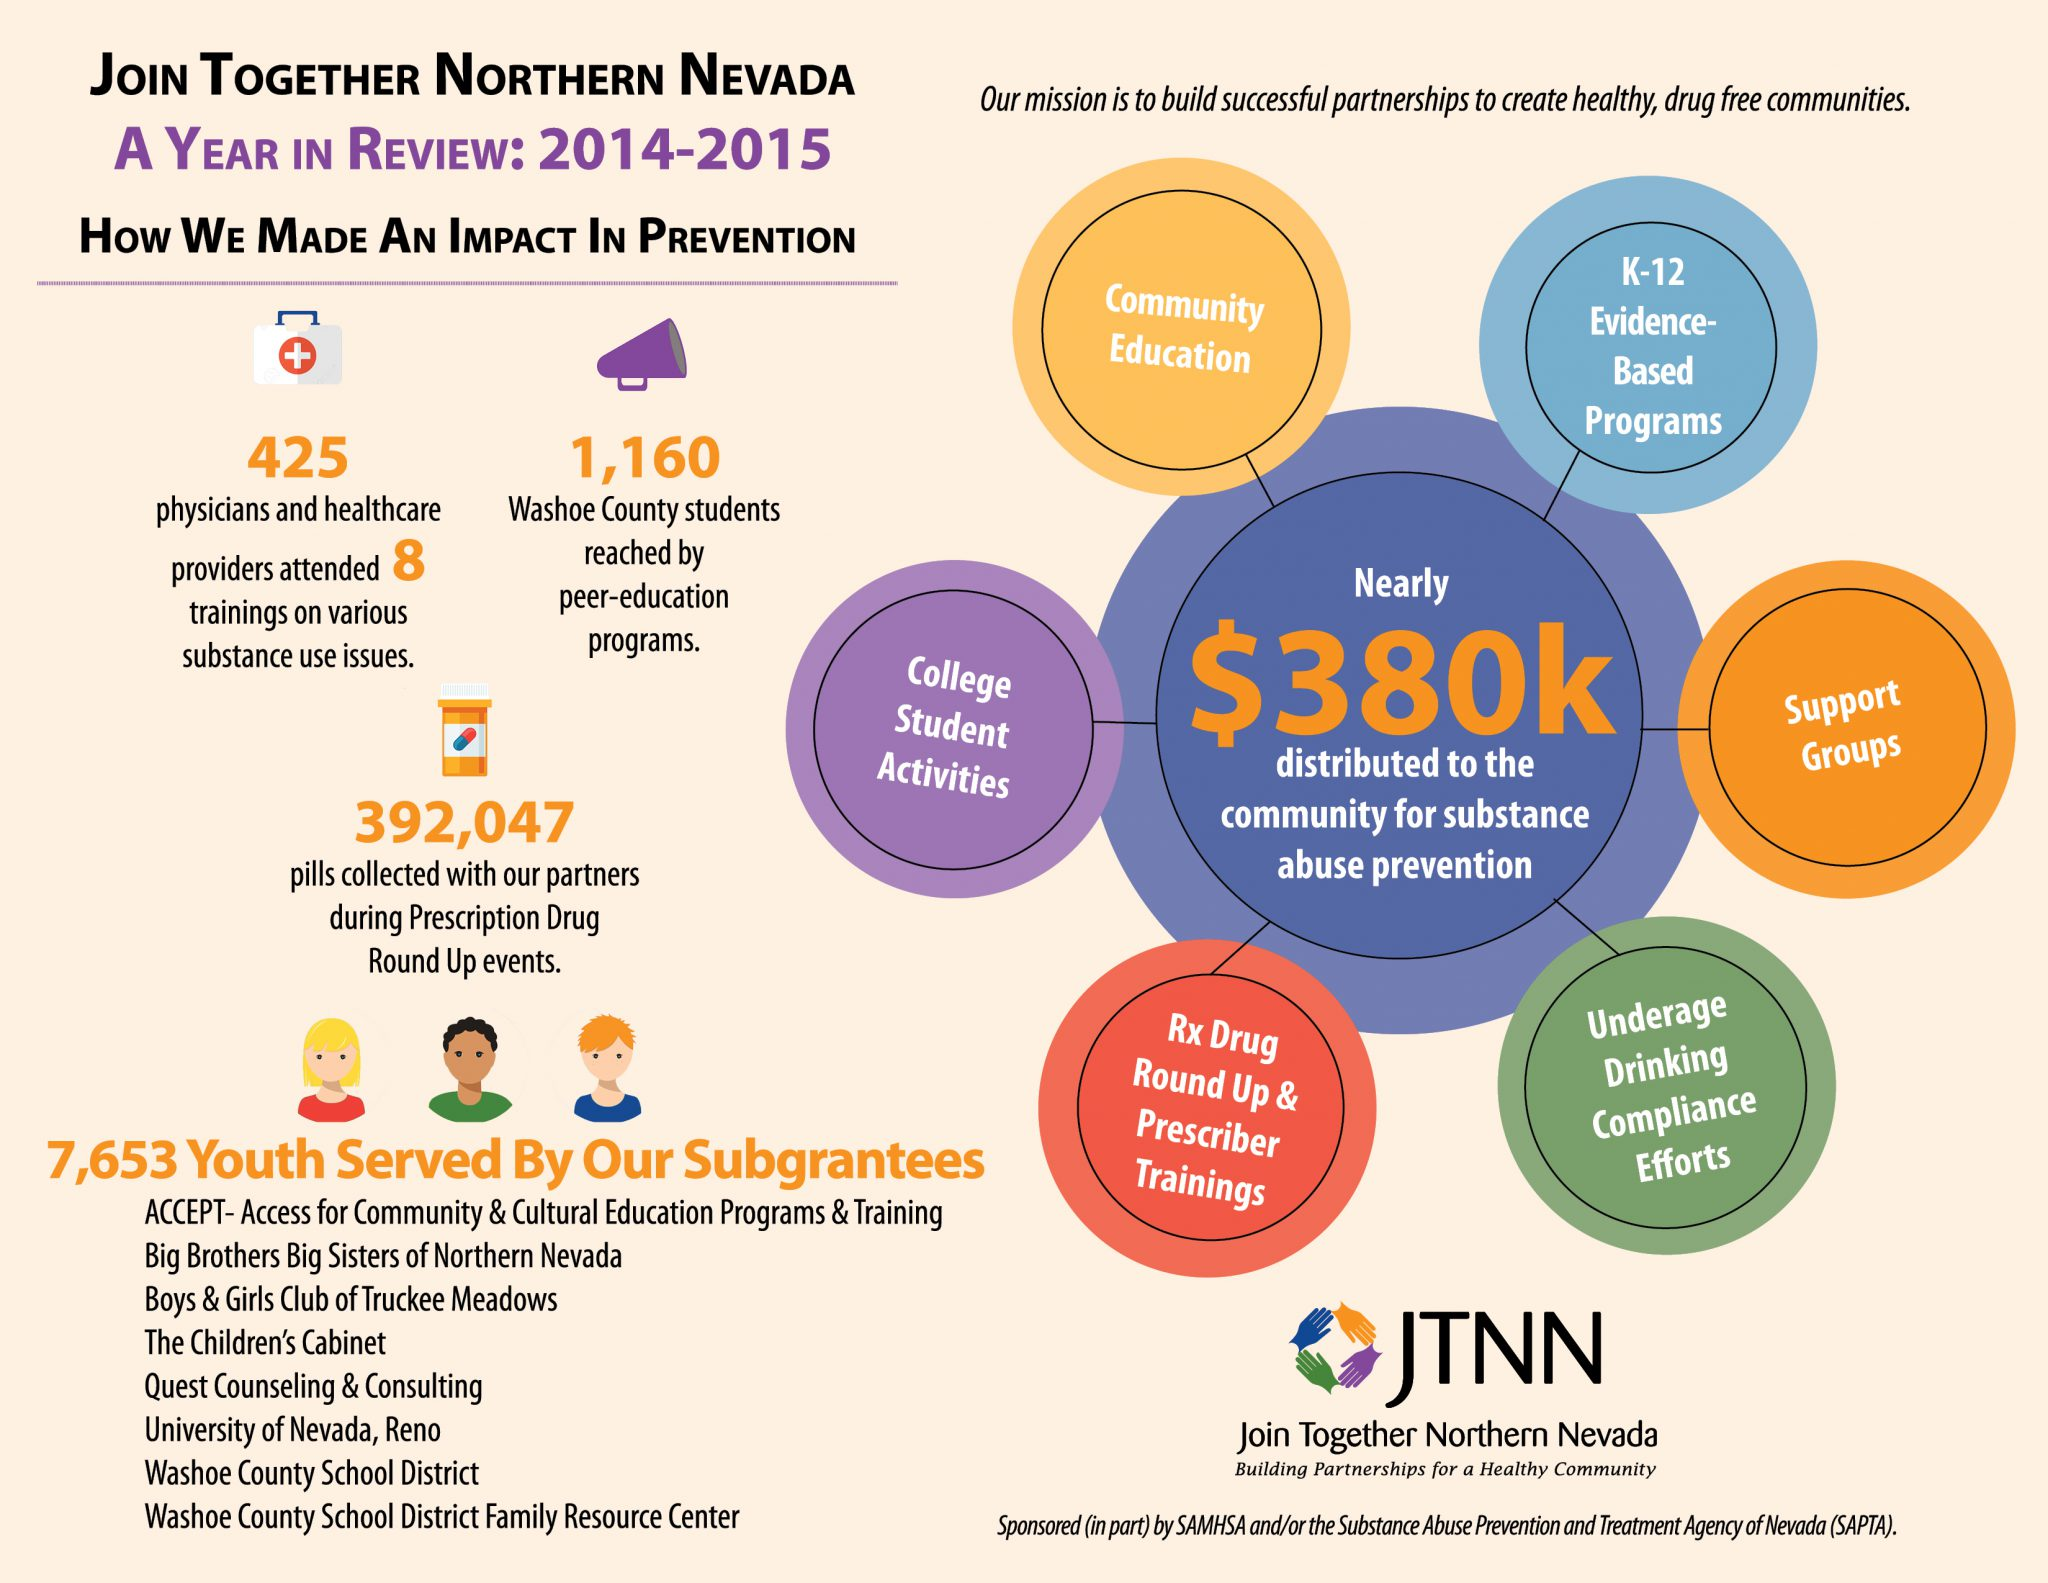 JTNN 14-15 Annual Report Infographic